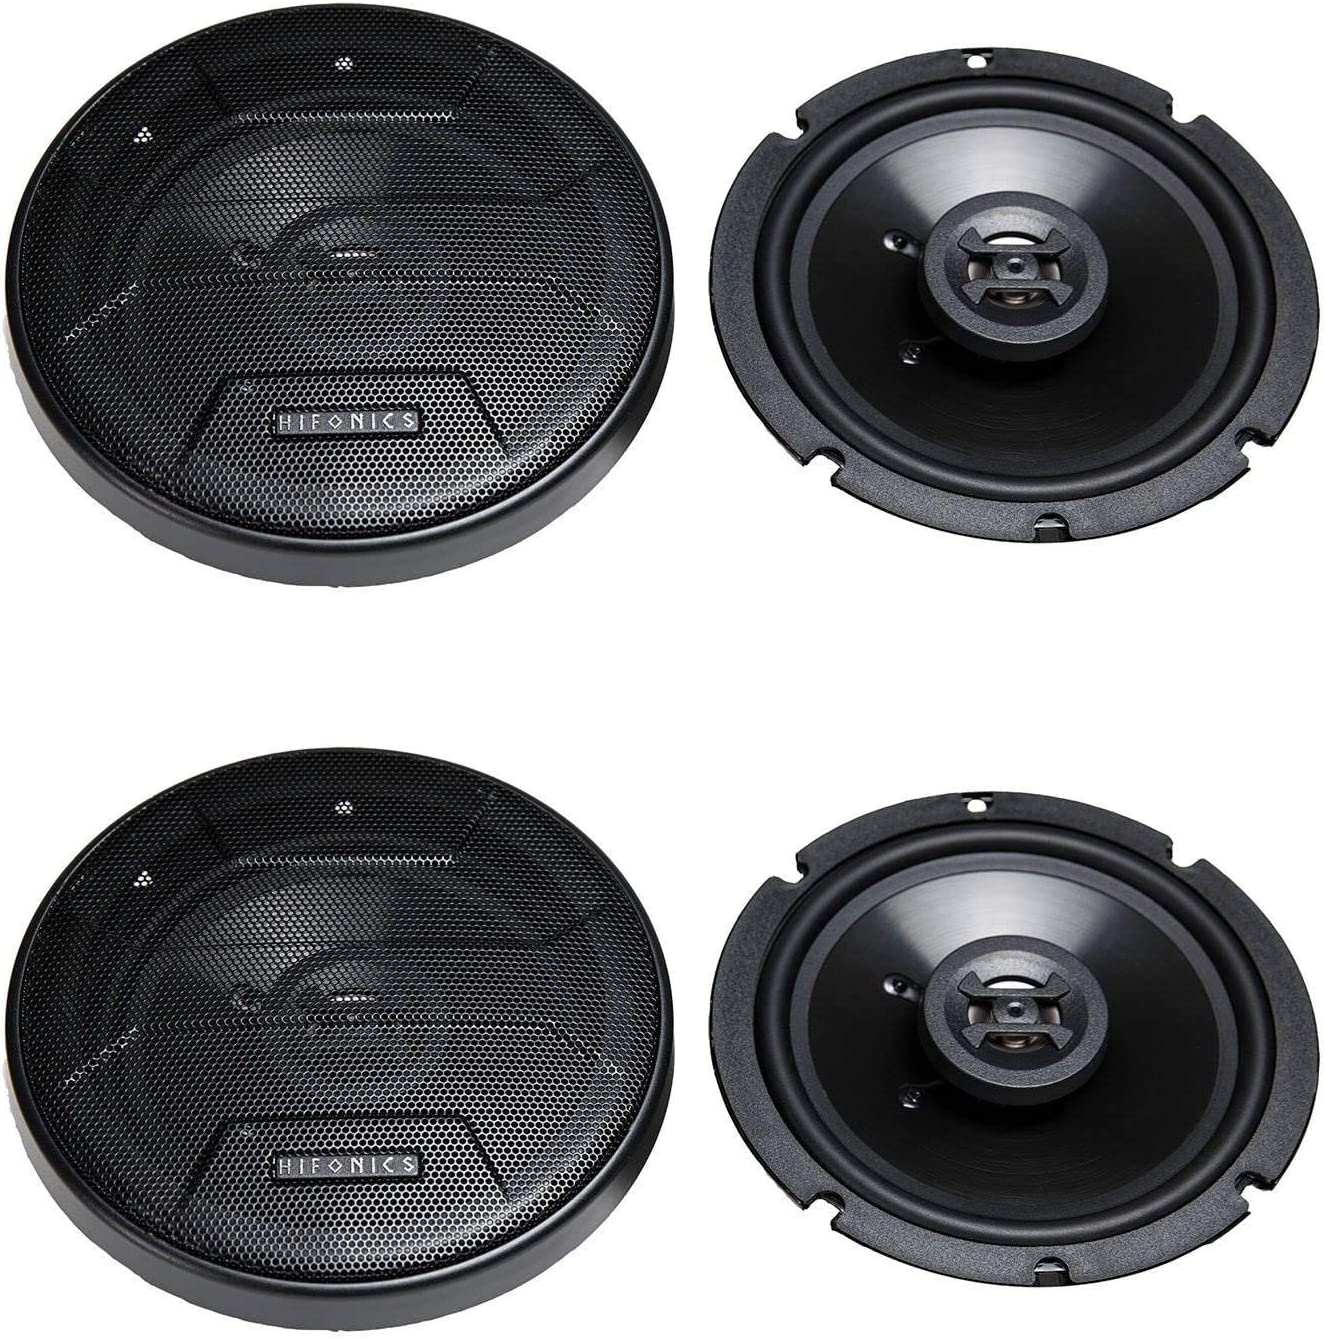 Black, Pair Grills Included Passive Crossover 6.5 Inch Shallow Mount Coaxial Speakers Sound System 3-Way Car Audio Hifonics ZS65CXS Zeus Coaxial Car Speakers 300 Watt